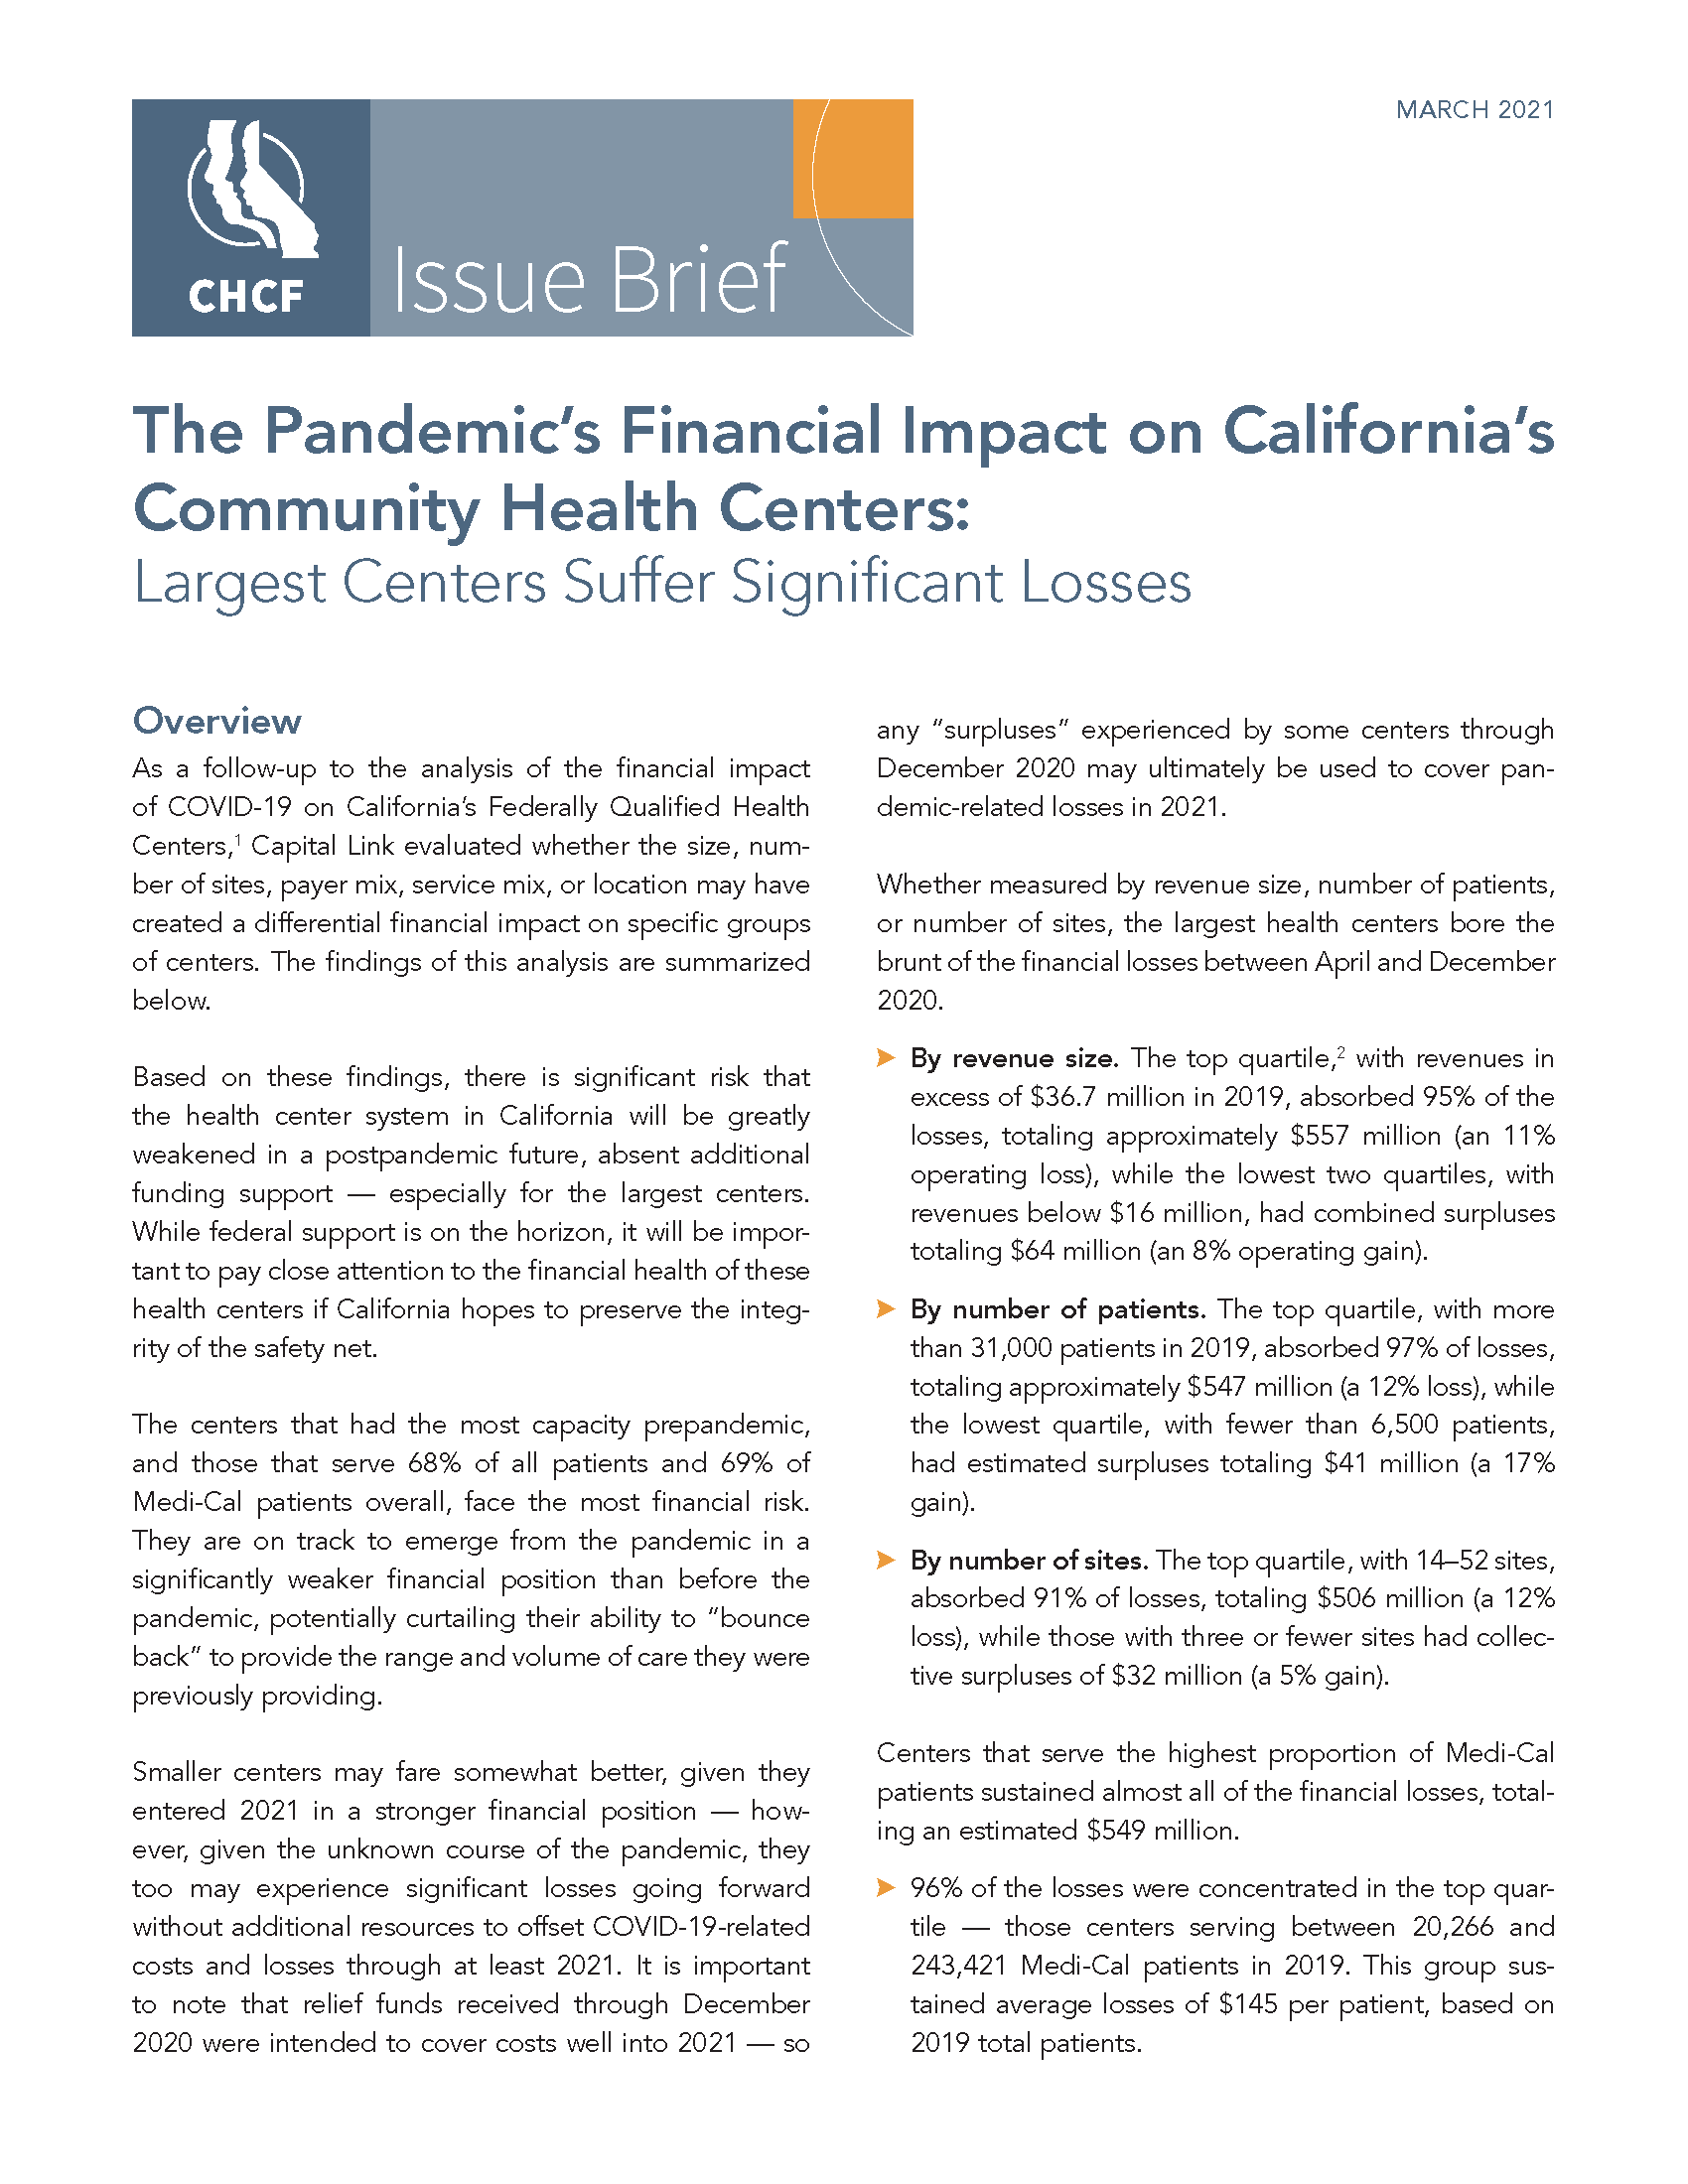 Pages from PandemicsFinancialImpactCaliforniasCommunityHealthCenters